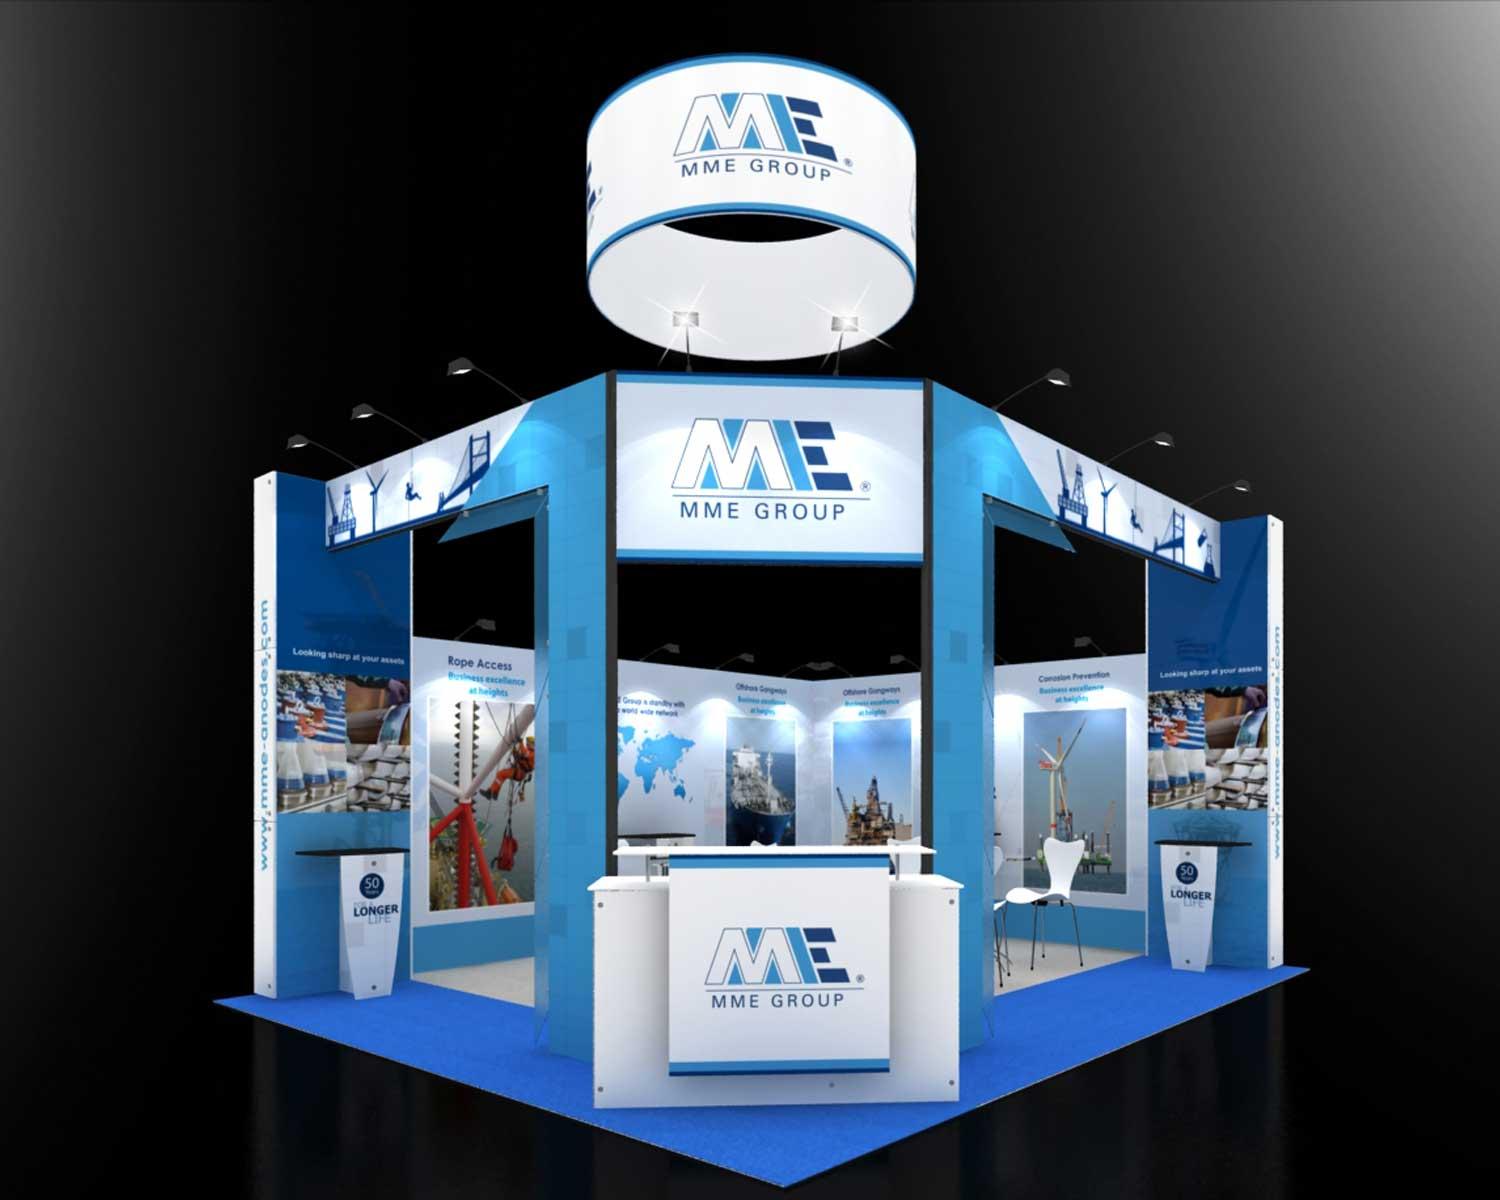 exhibition booth design ideas